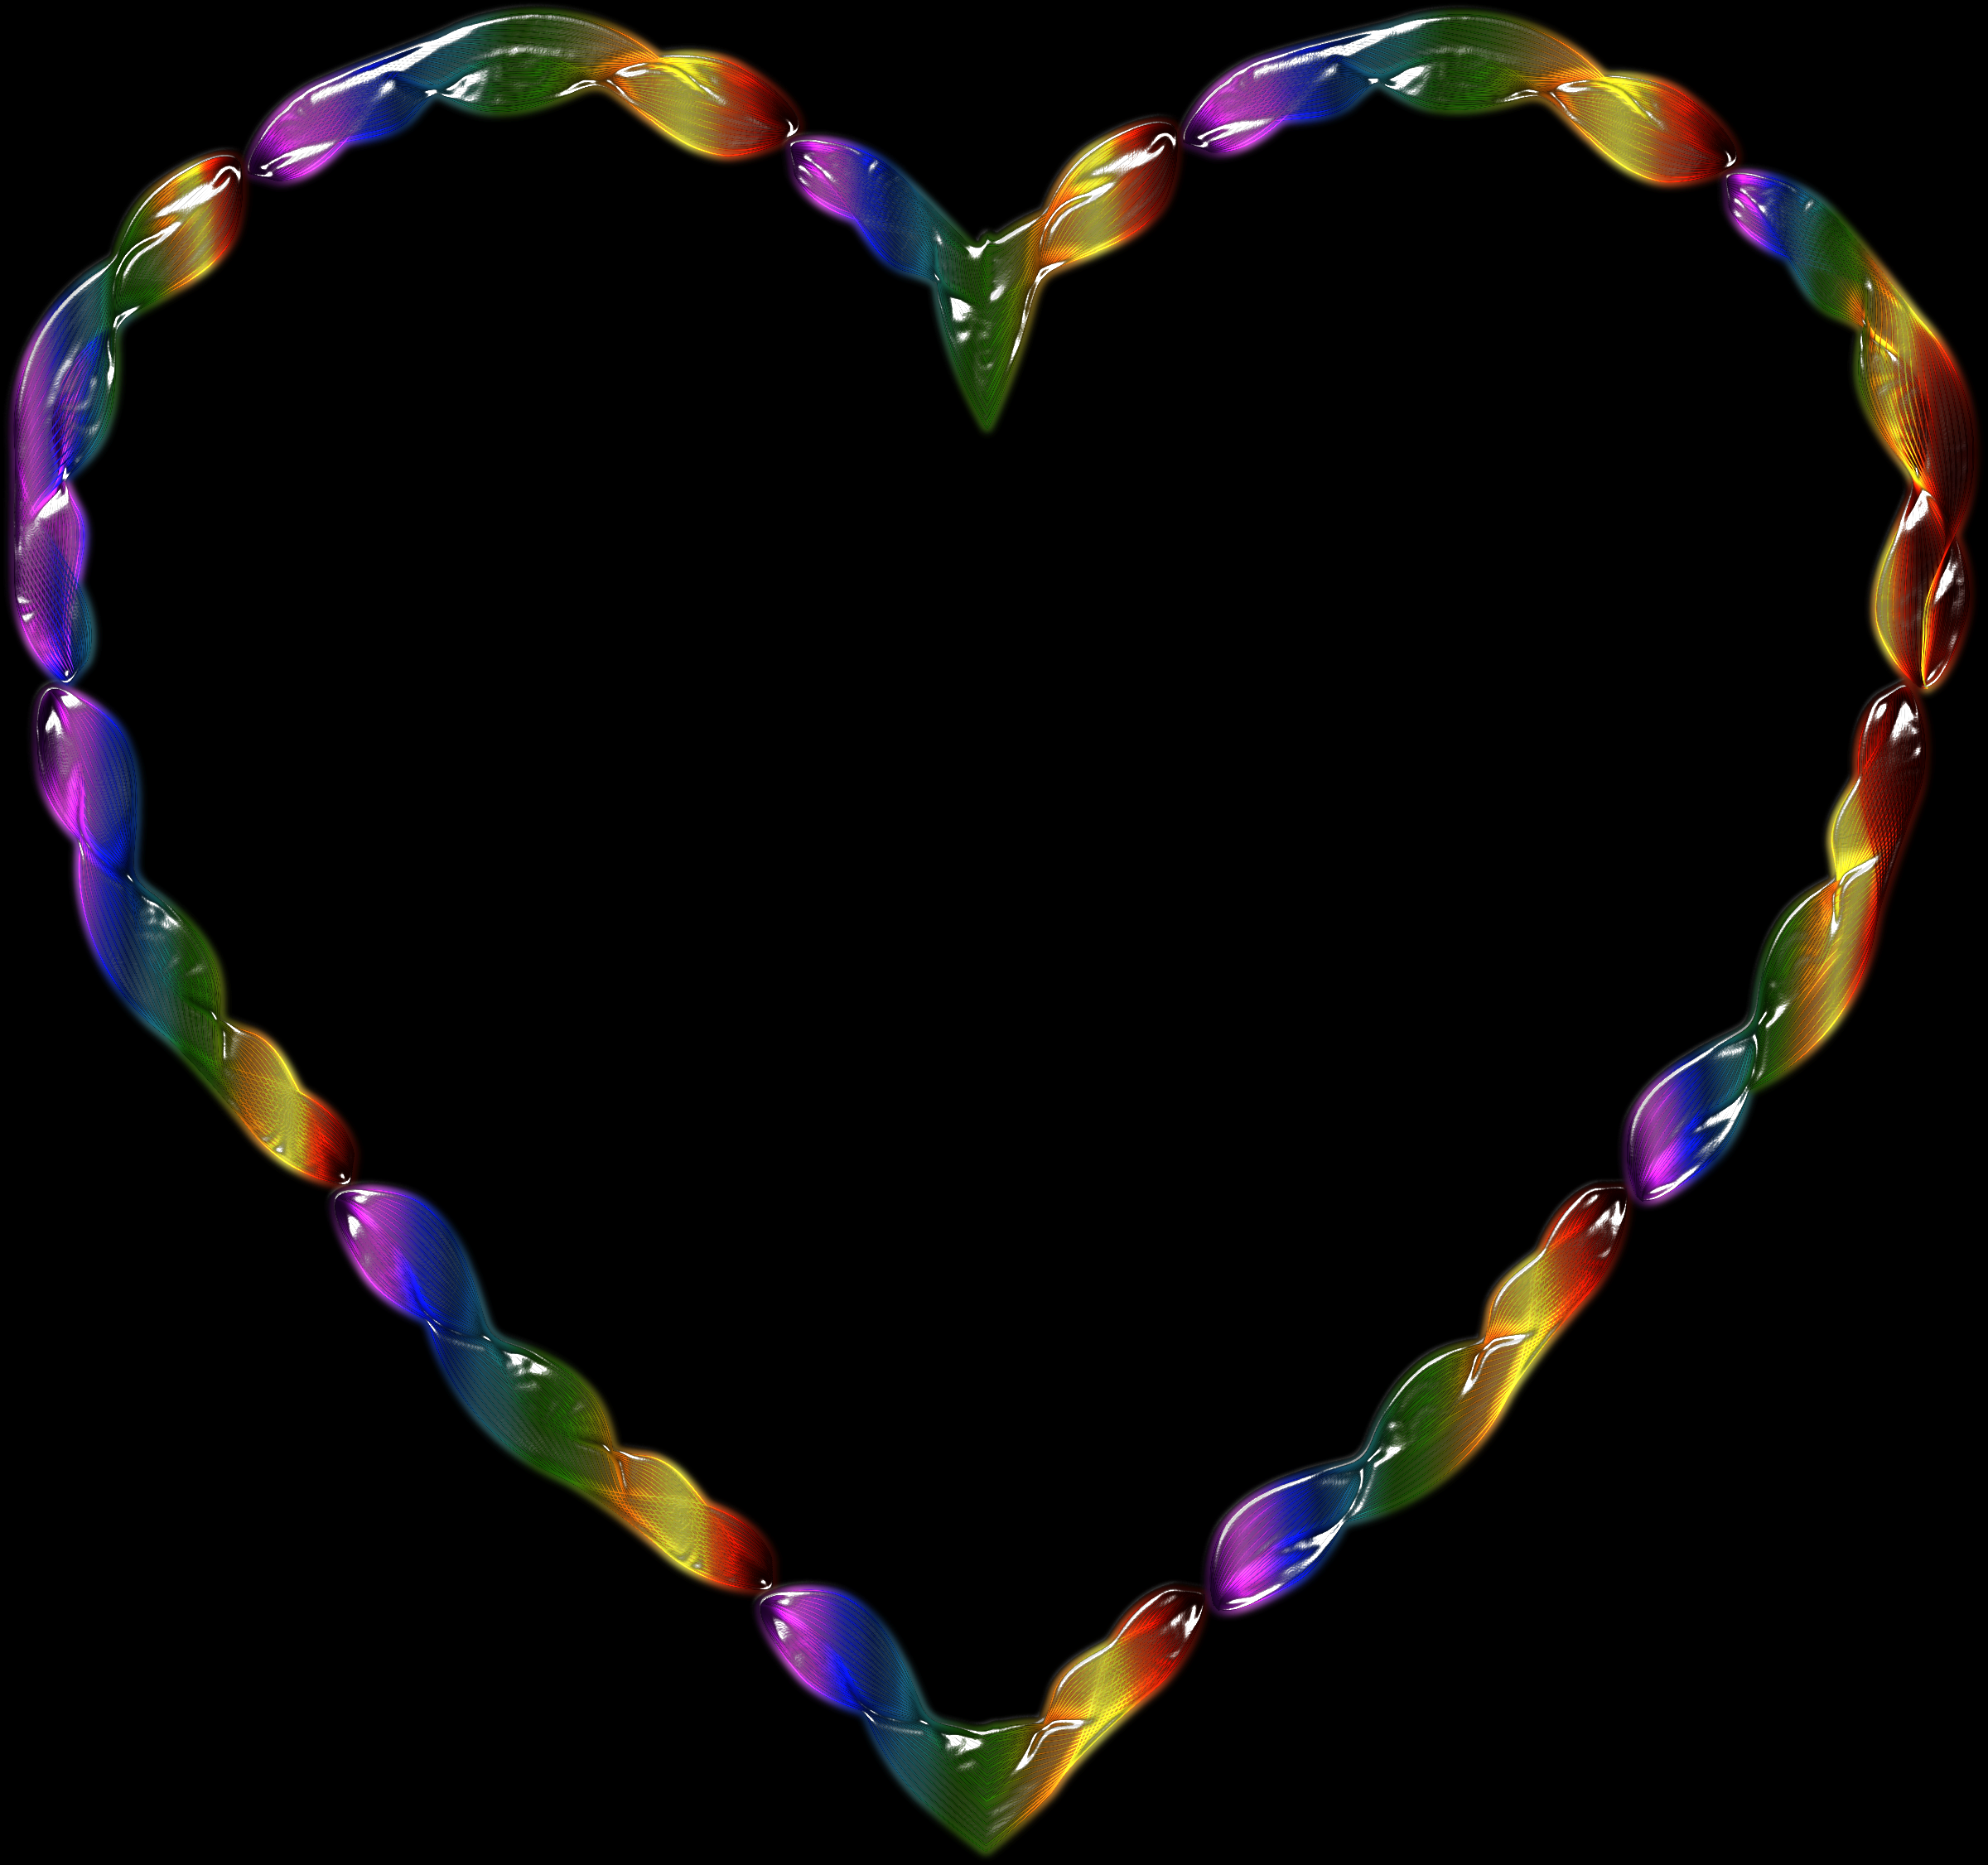 Rainbow Line Art Heart 2 by GDJ